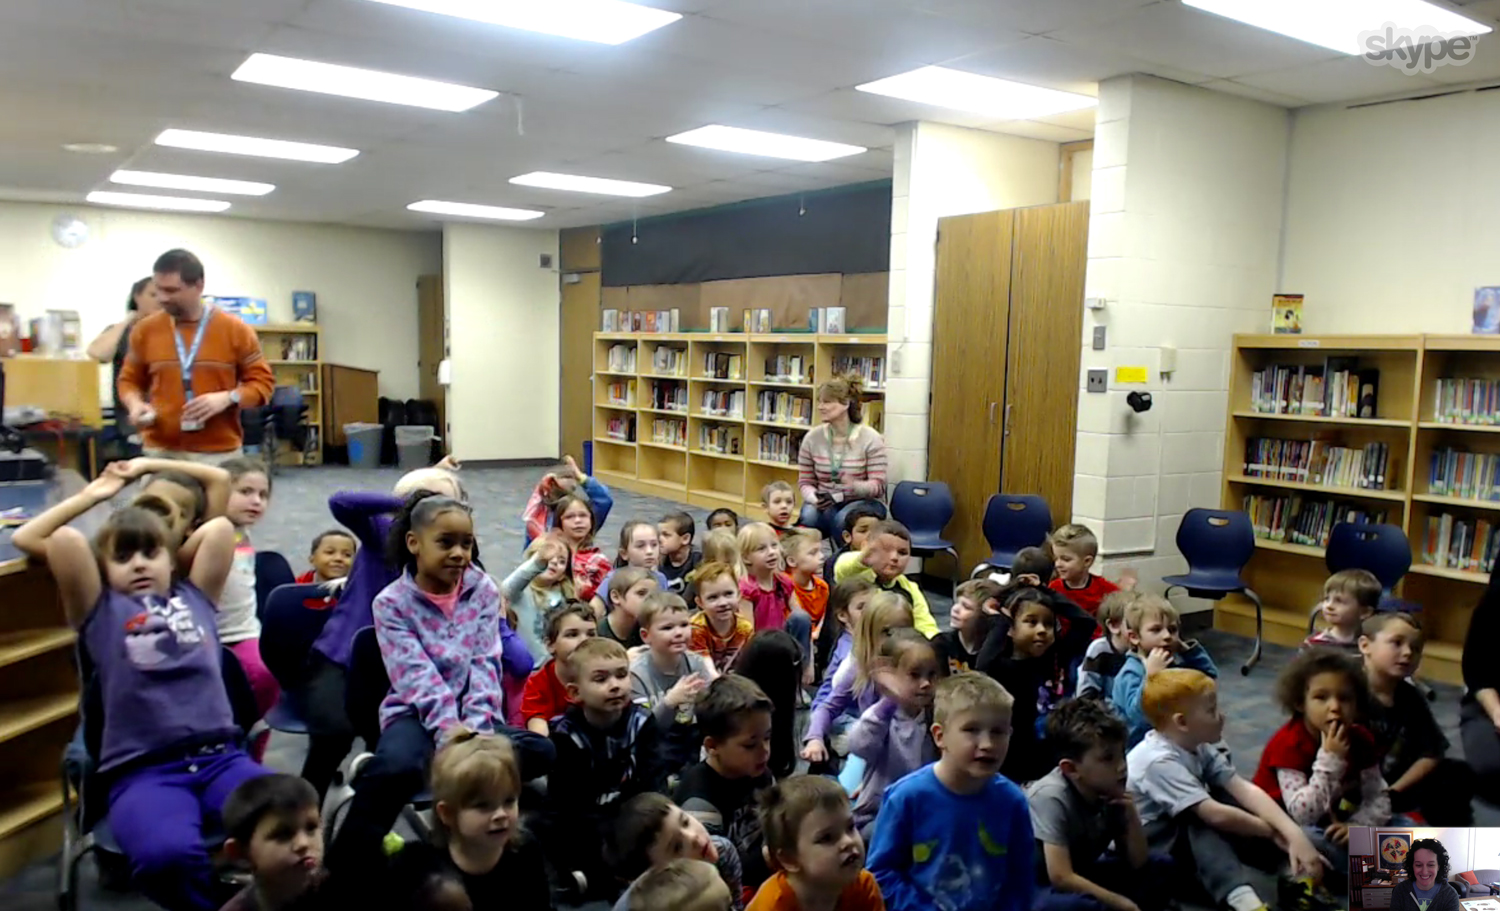 At the end of this session with kindergartners in Lapeer, MI , the teacher froze the screen so that all each student could stand up, turn around, and have a picture taken with me in the background. So sweet!